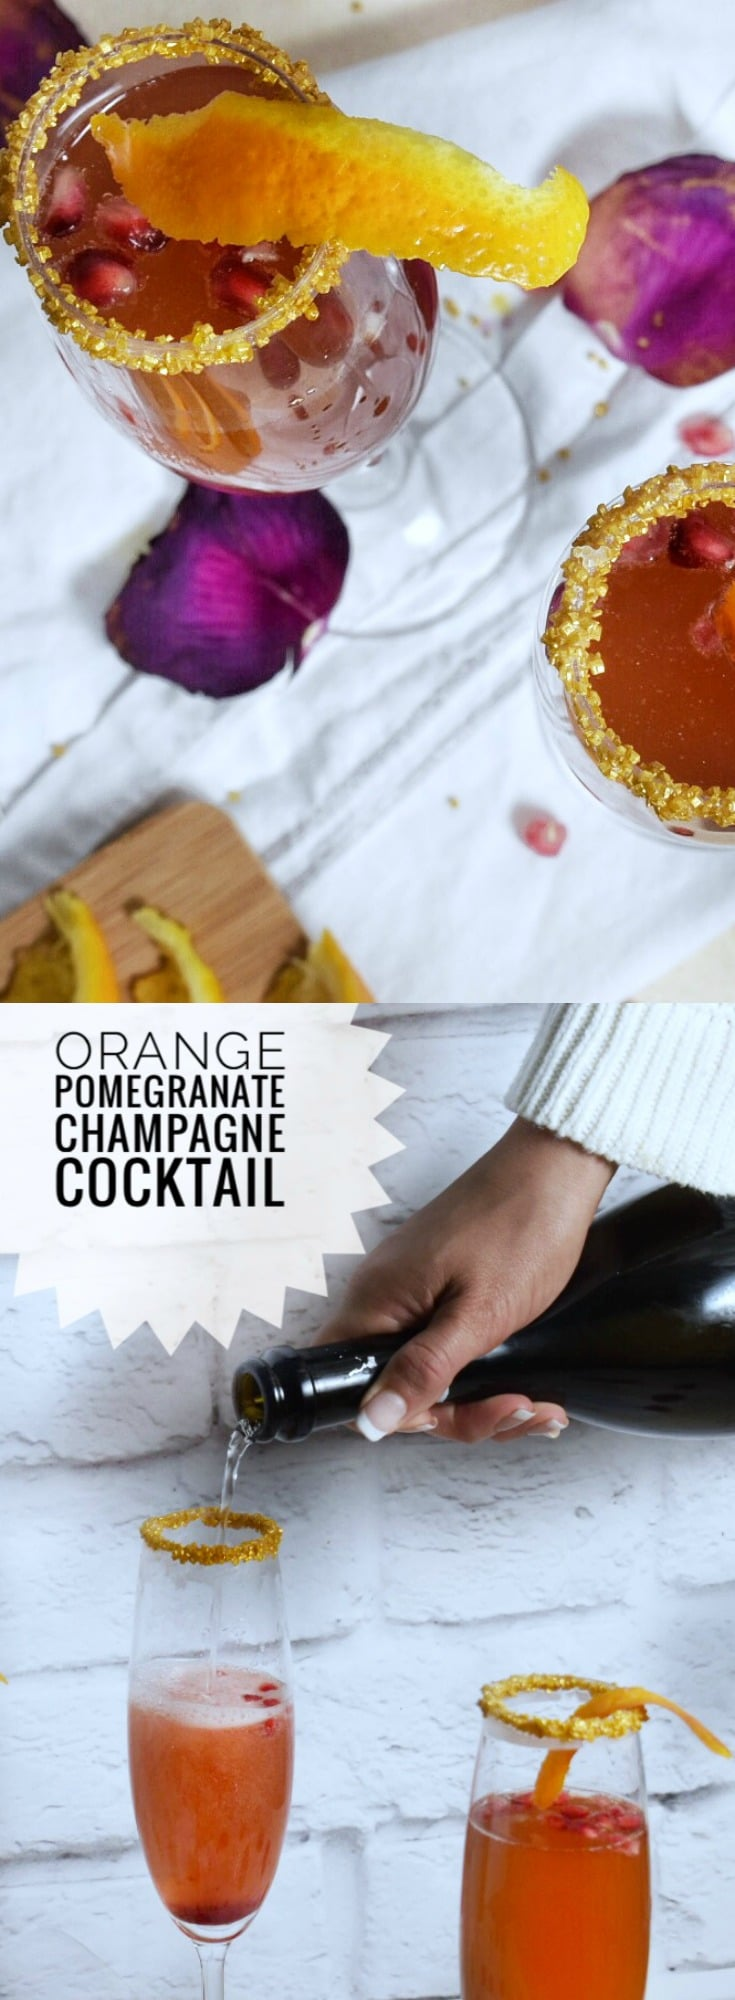 This easy & festive cocktails are the perfect way to ring in the New Year! Celebrate with this gorgeous and bright Orange Pomegranate Champagne Cocktail!